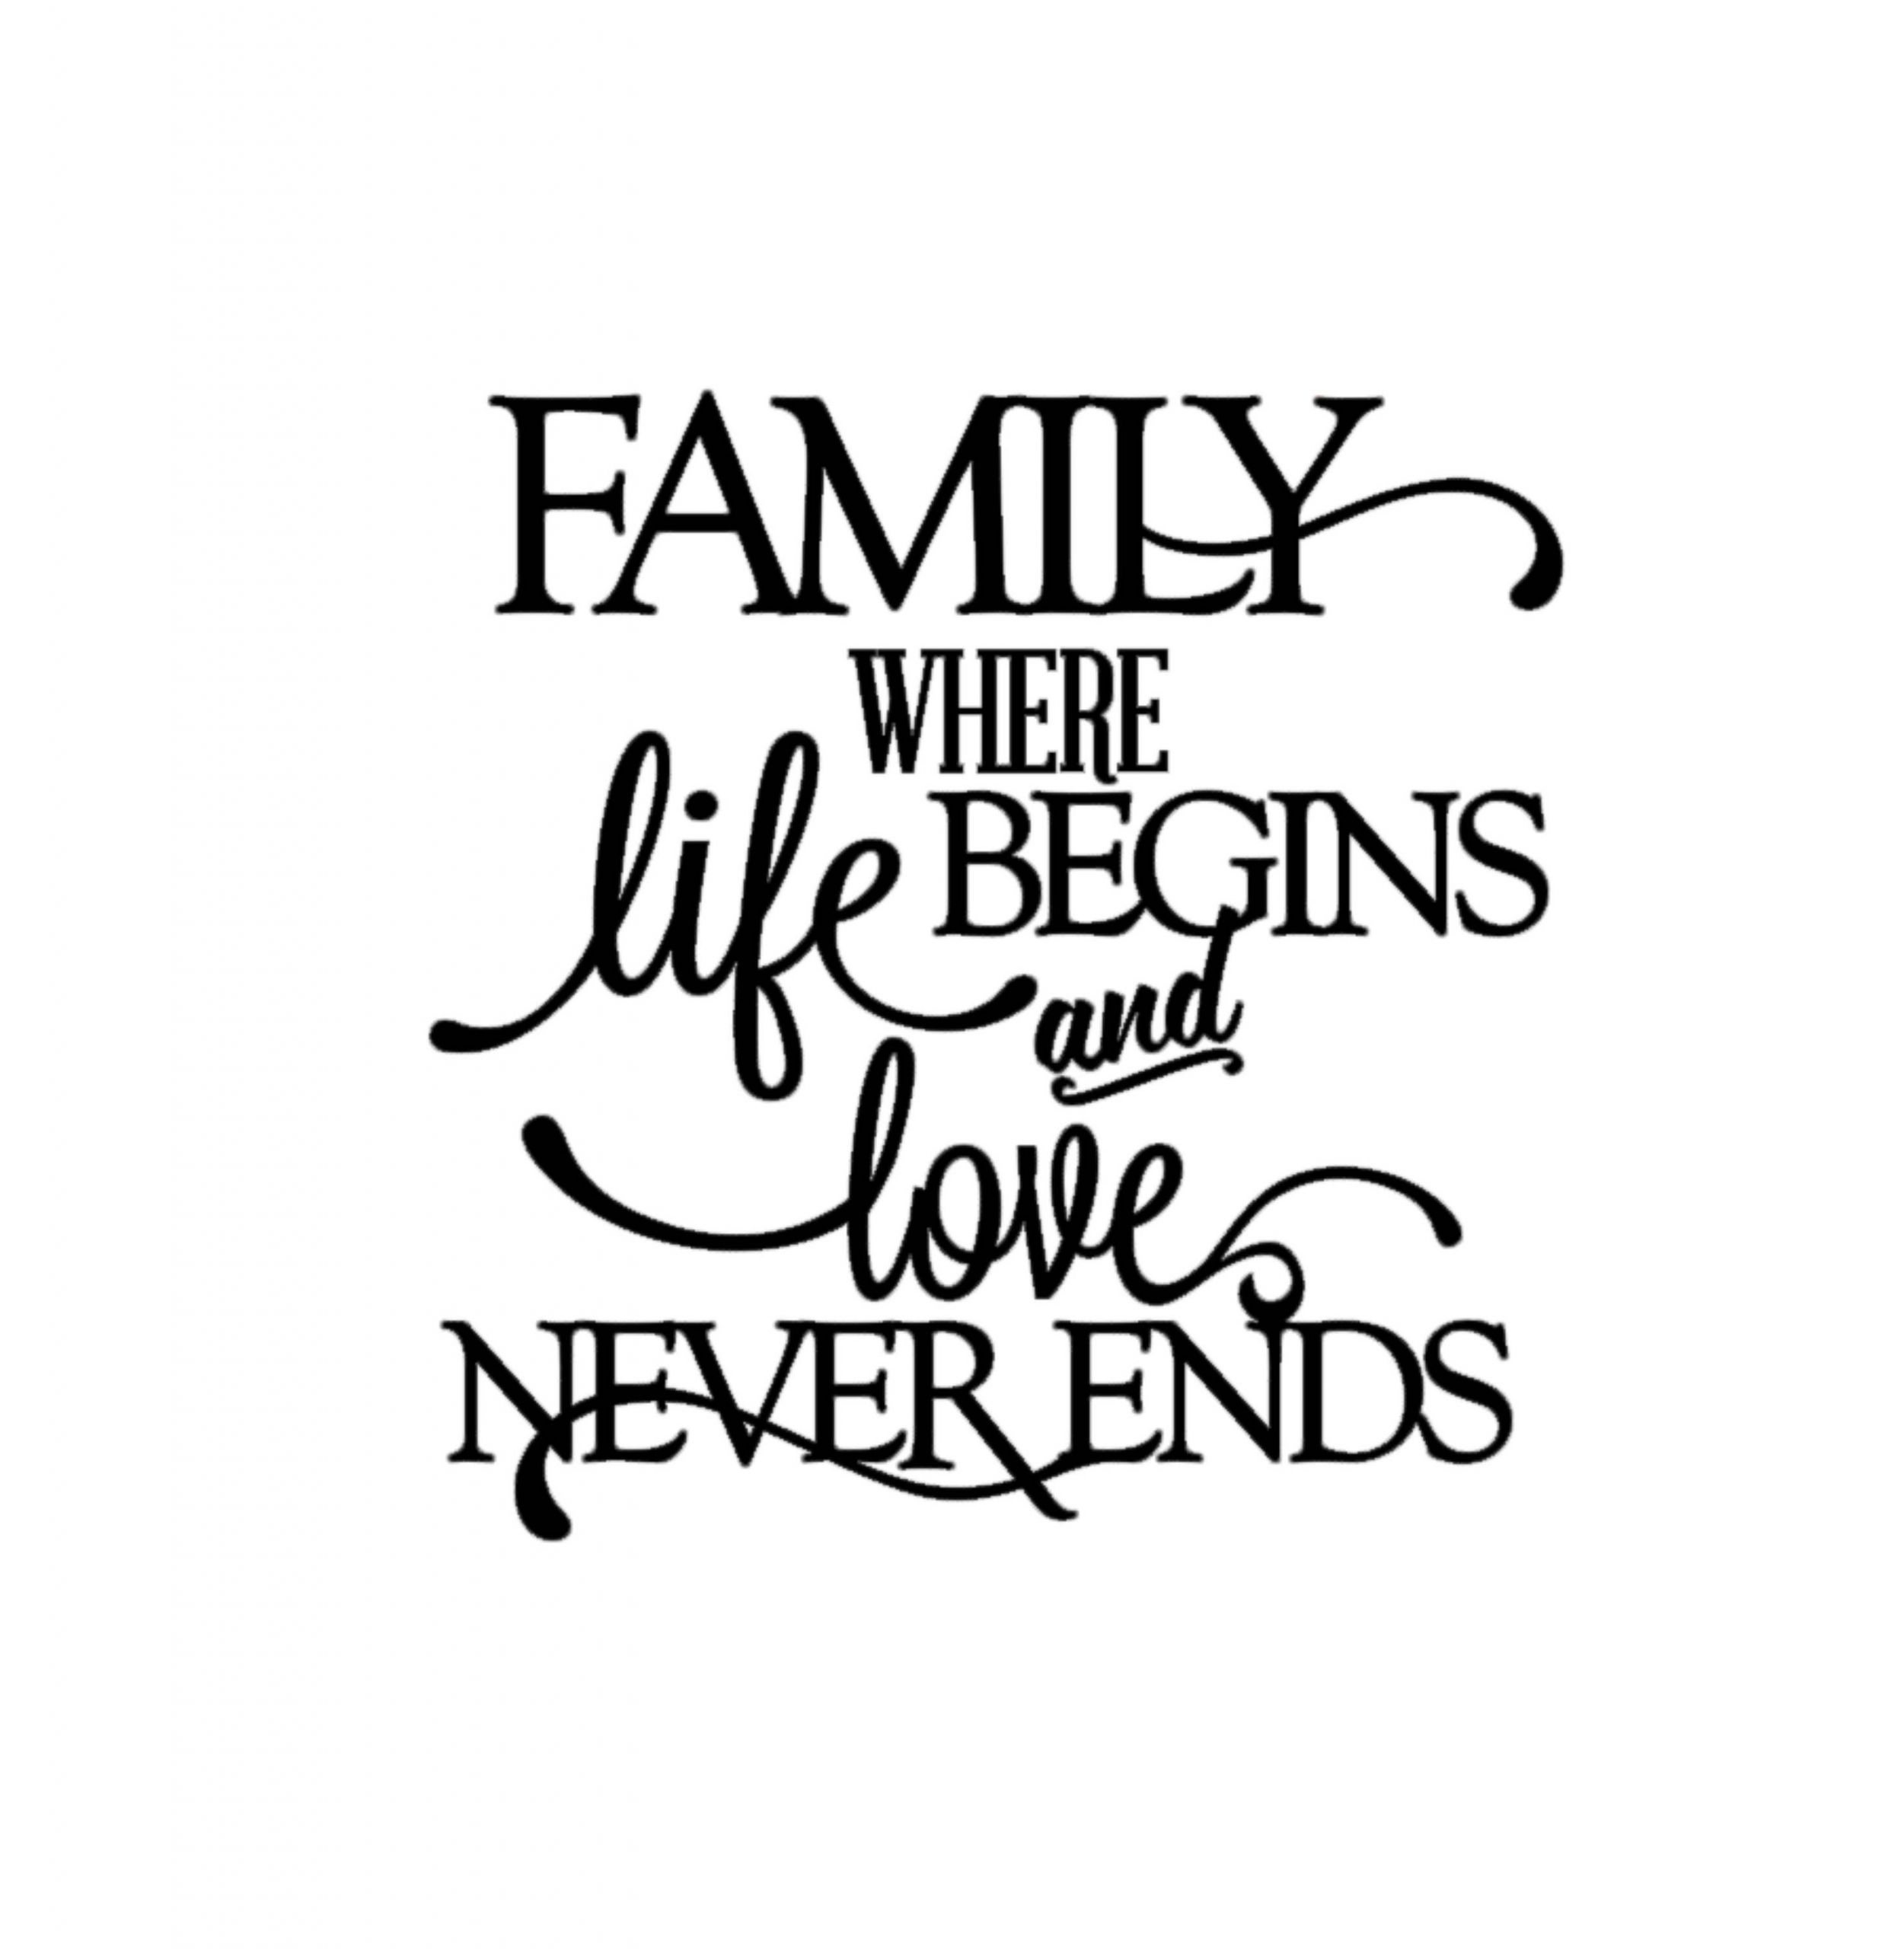 Love Family Quotes  Family Where Life Begins and Love Never Ends Quote Decal